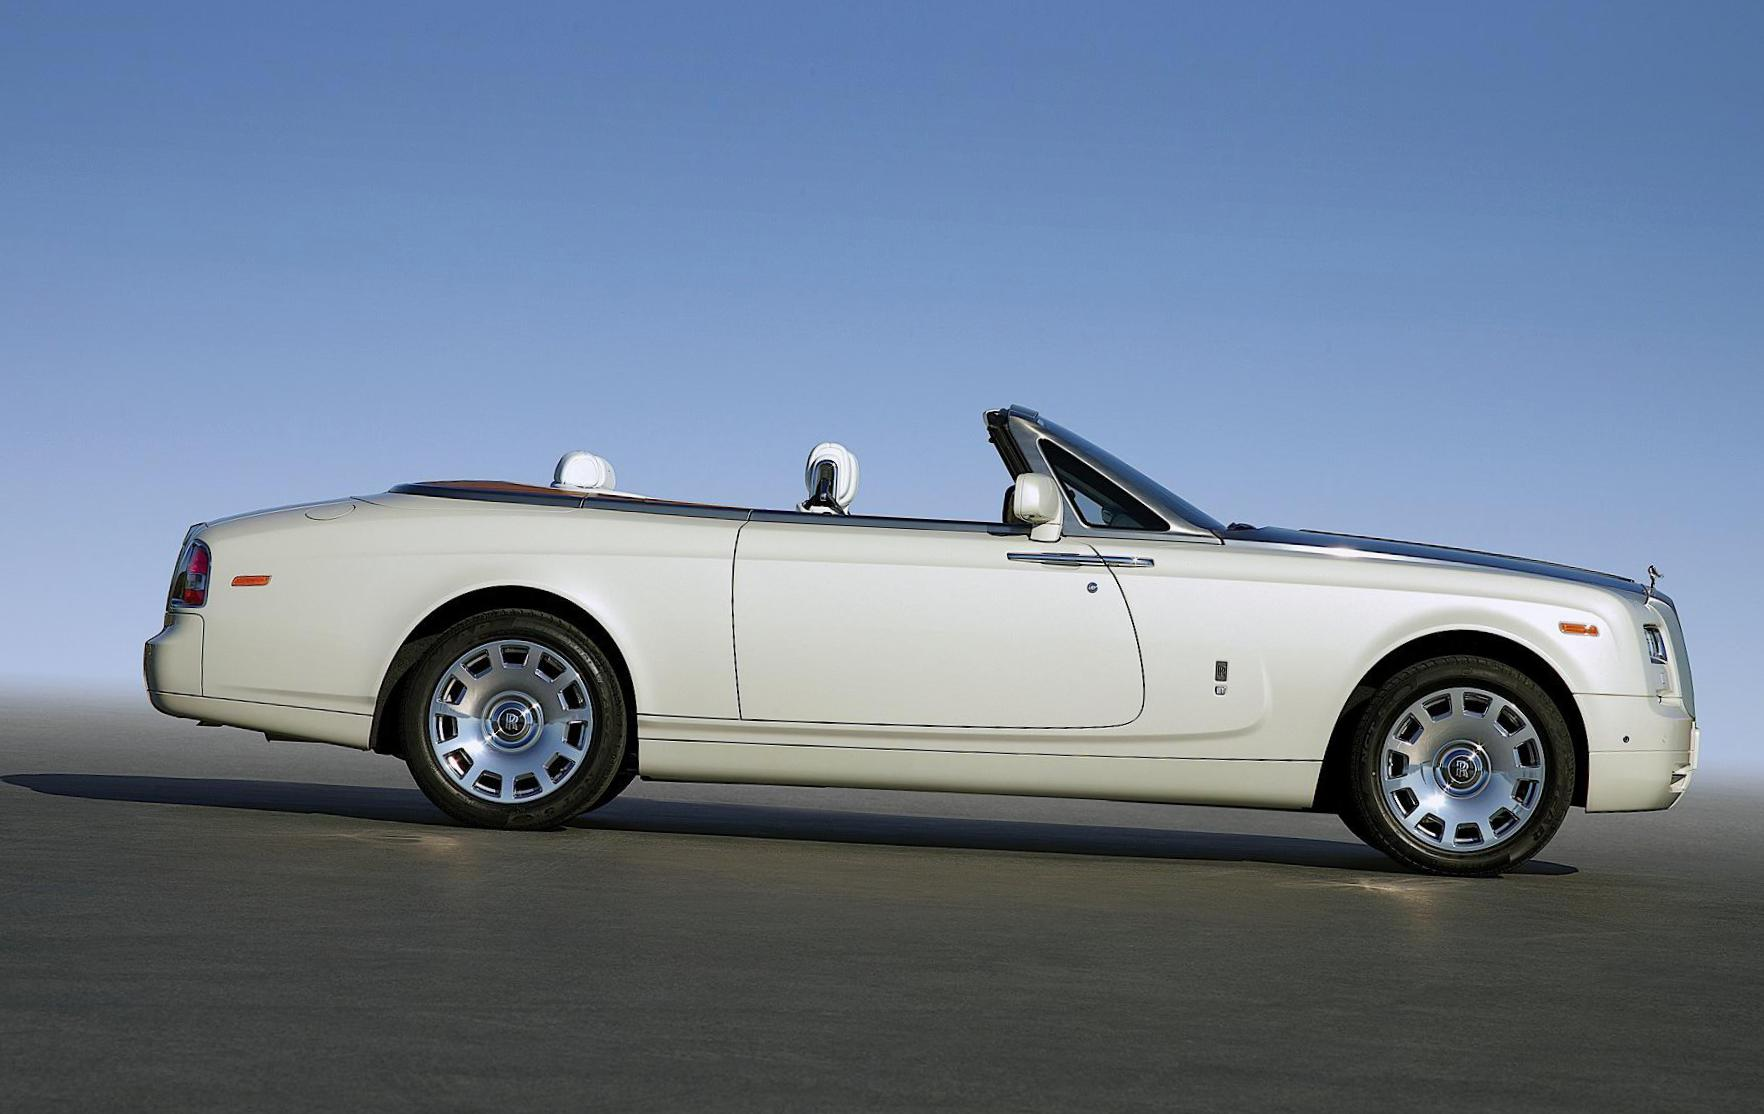 Phantom Drophead Coupe Rolls-Royce parts sedan